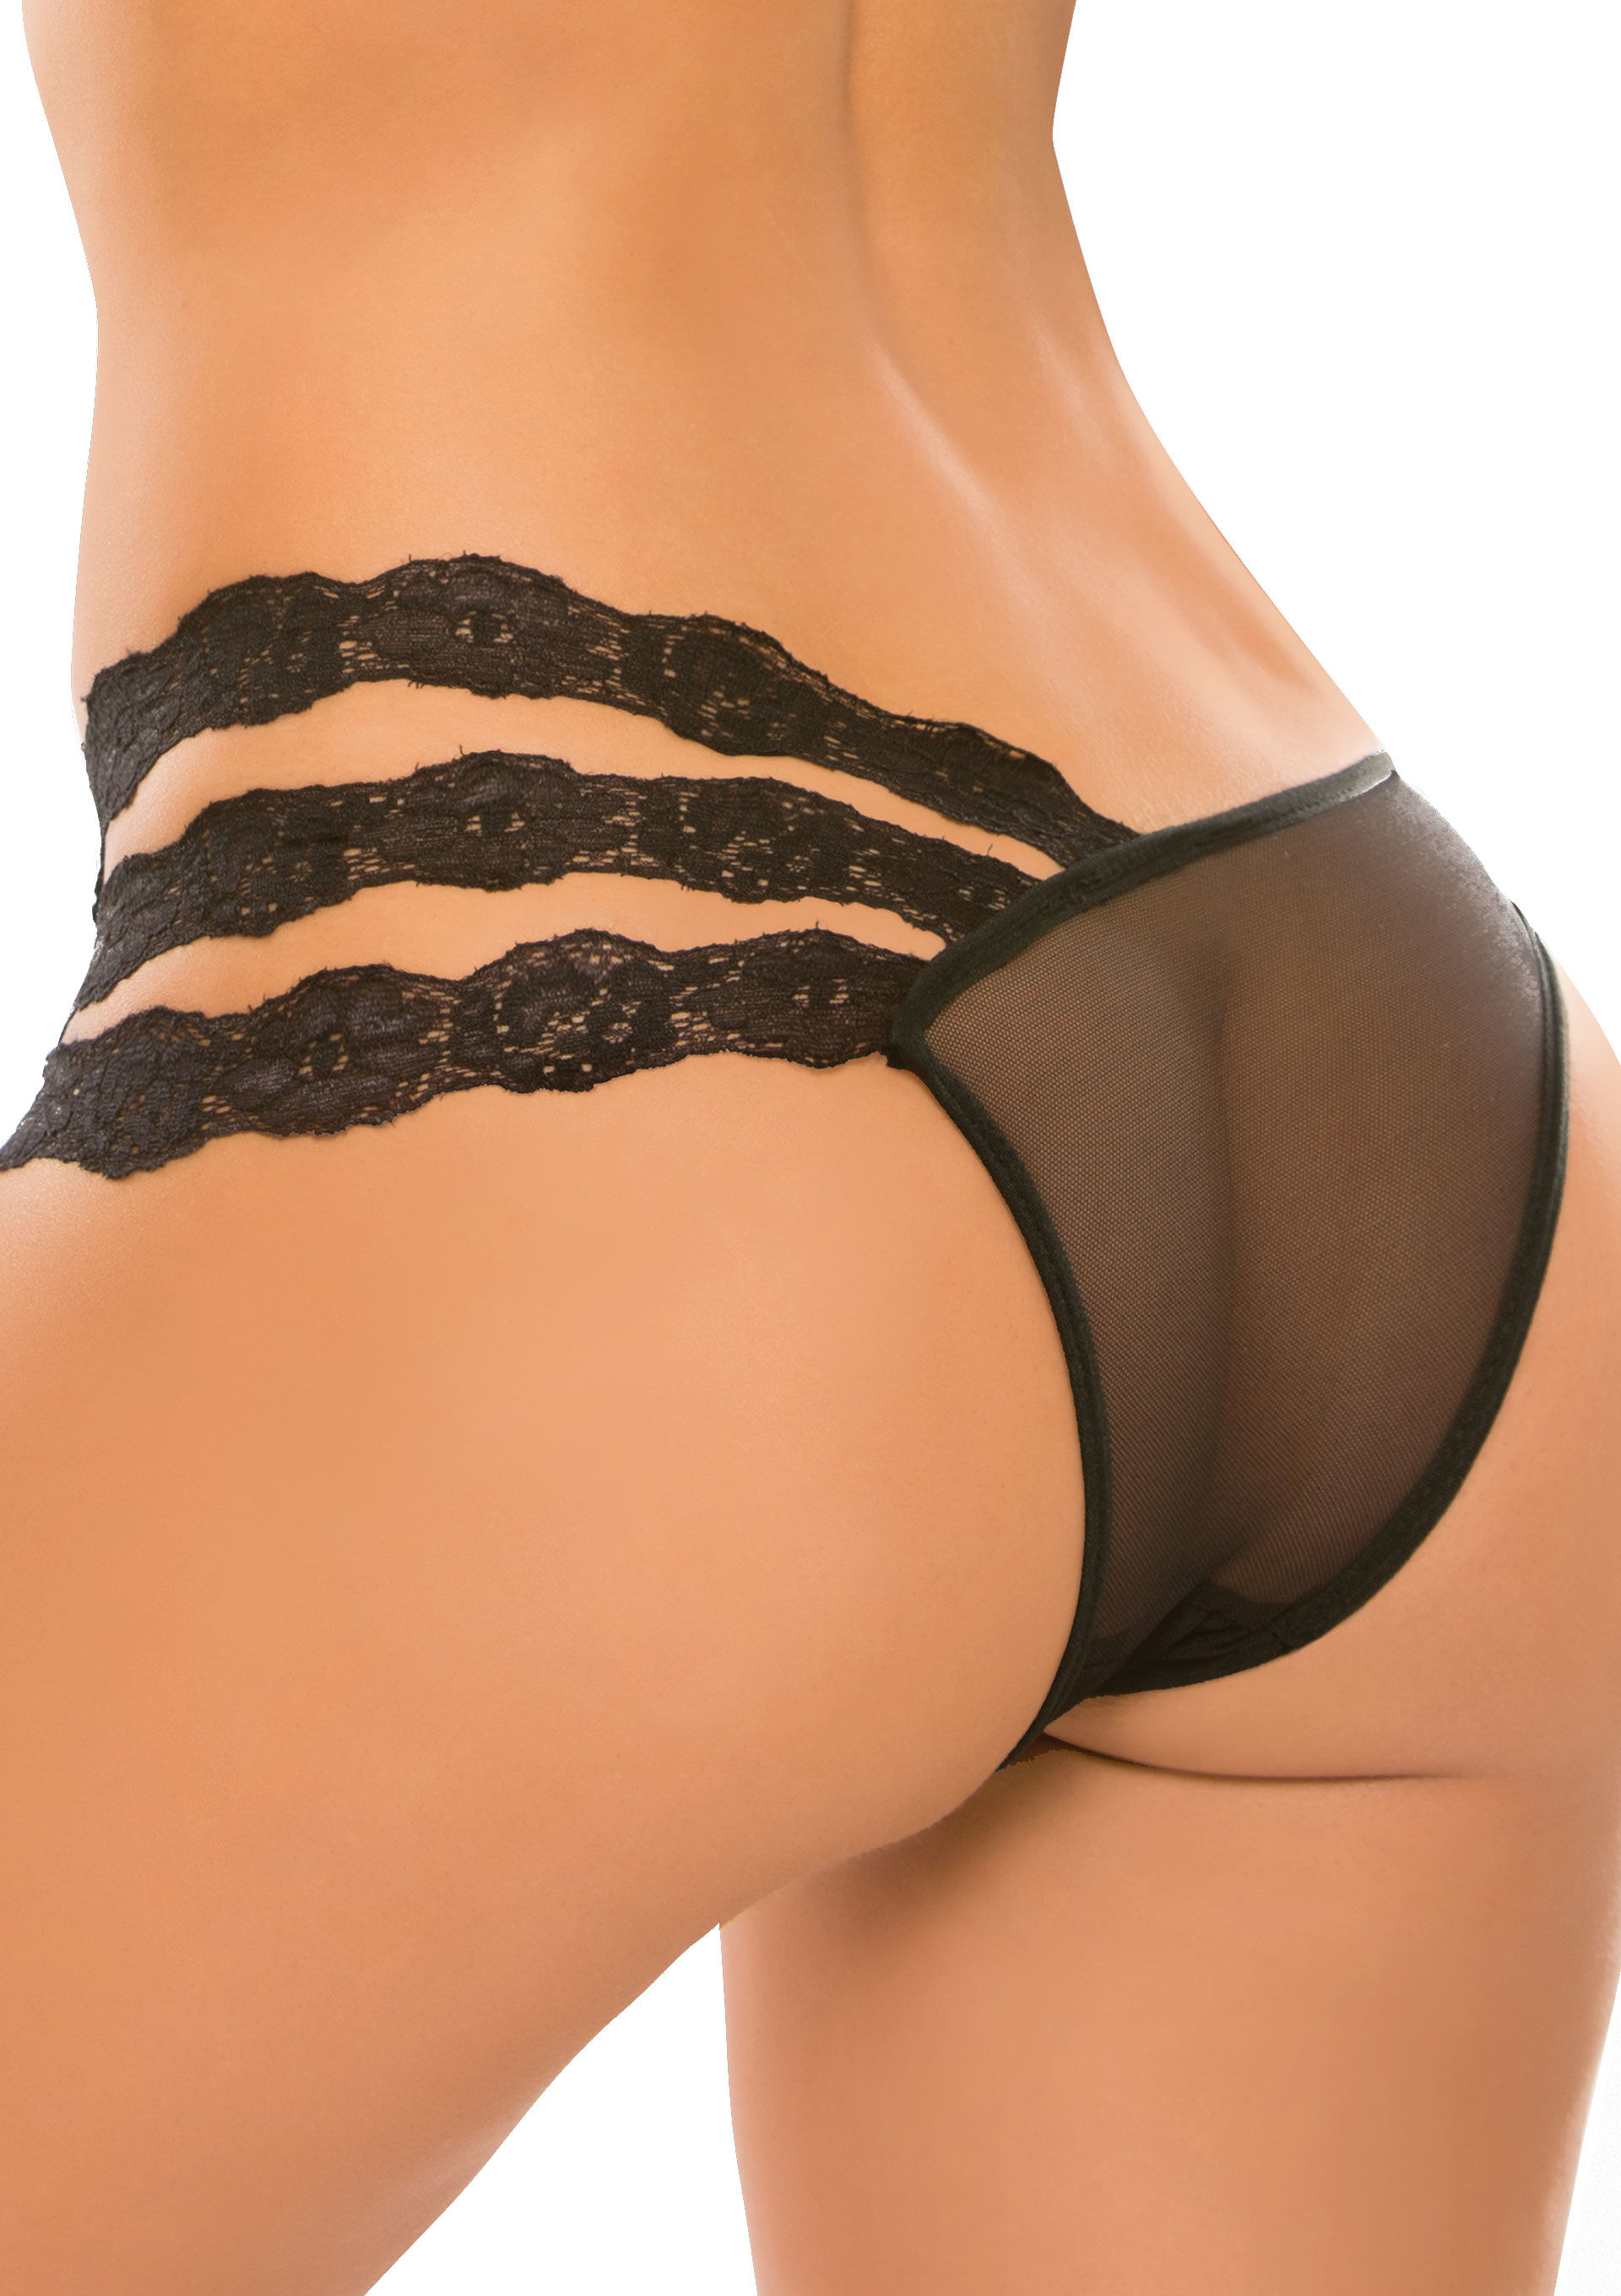 Allure Wild Orchid Panty Black